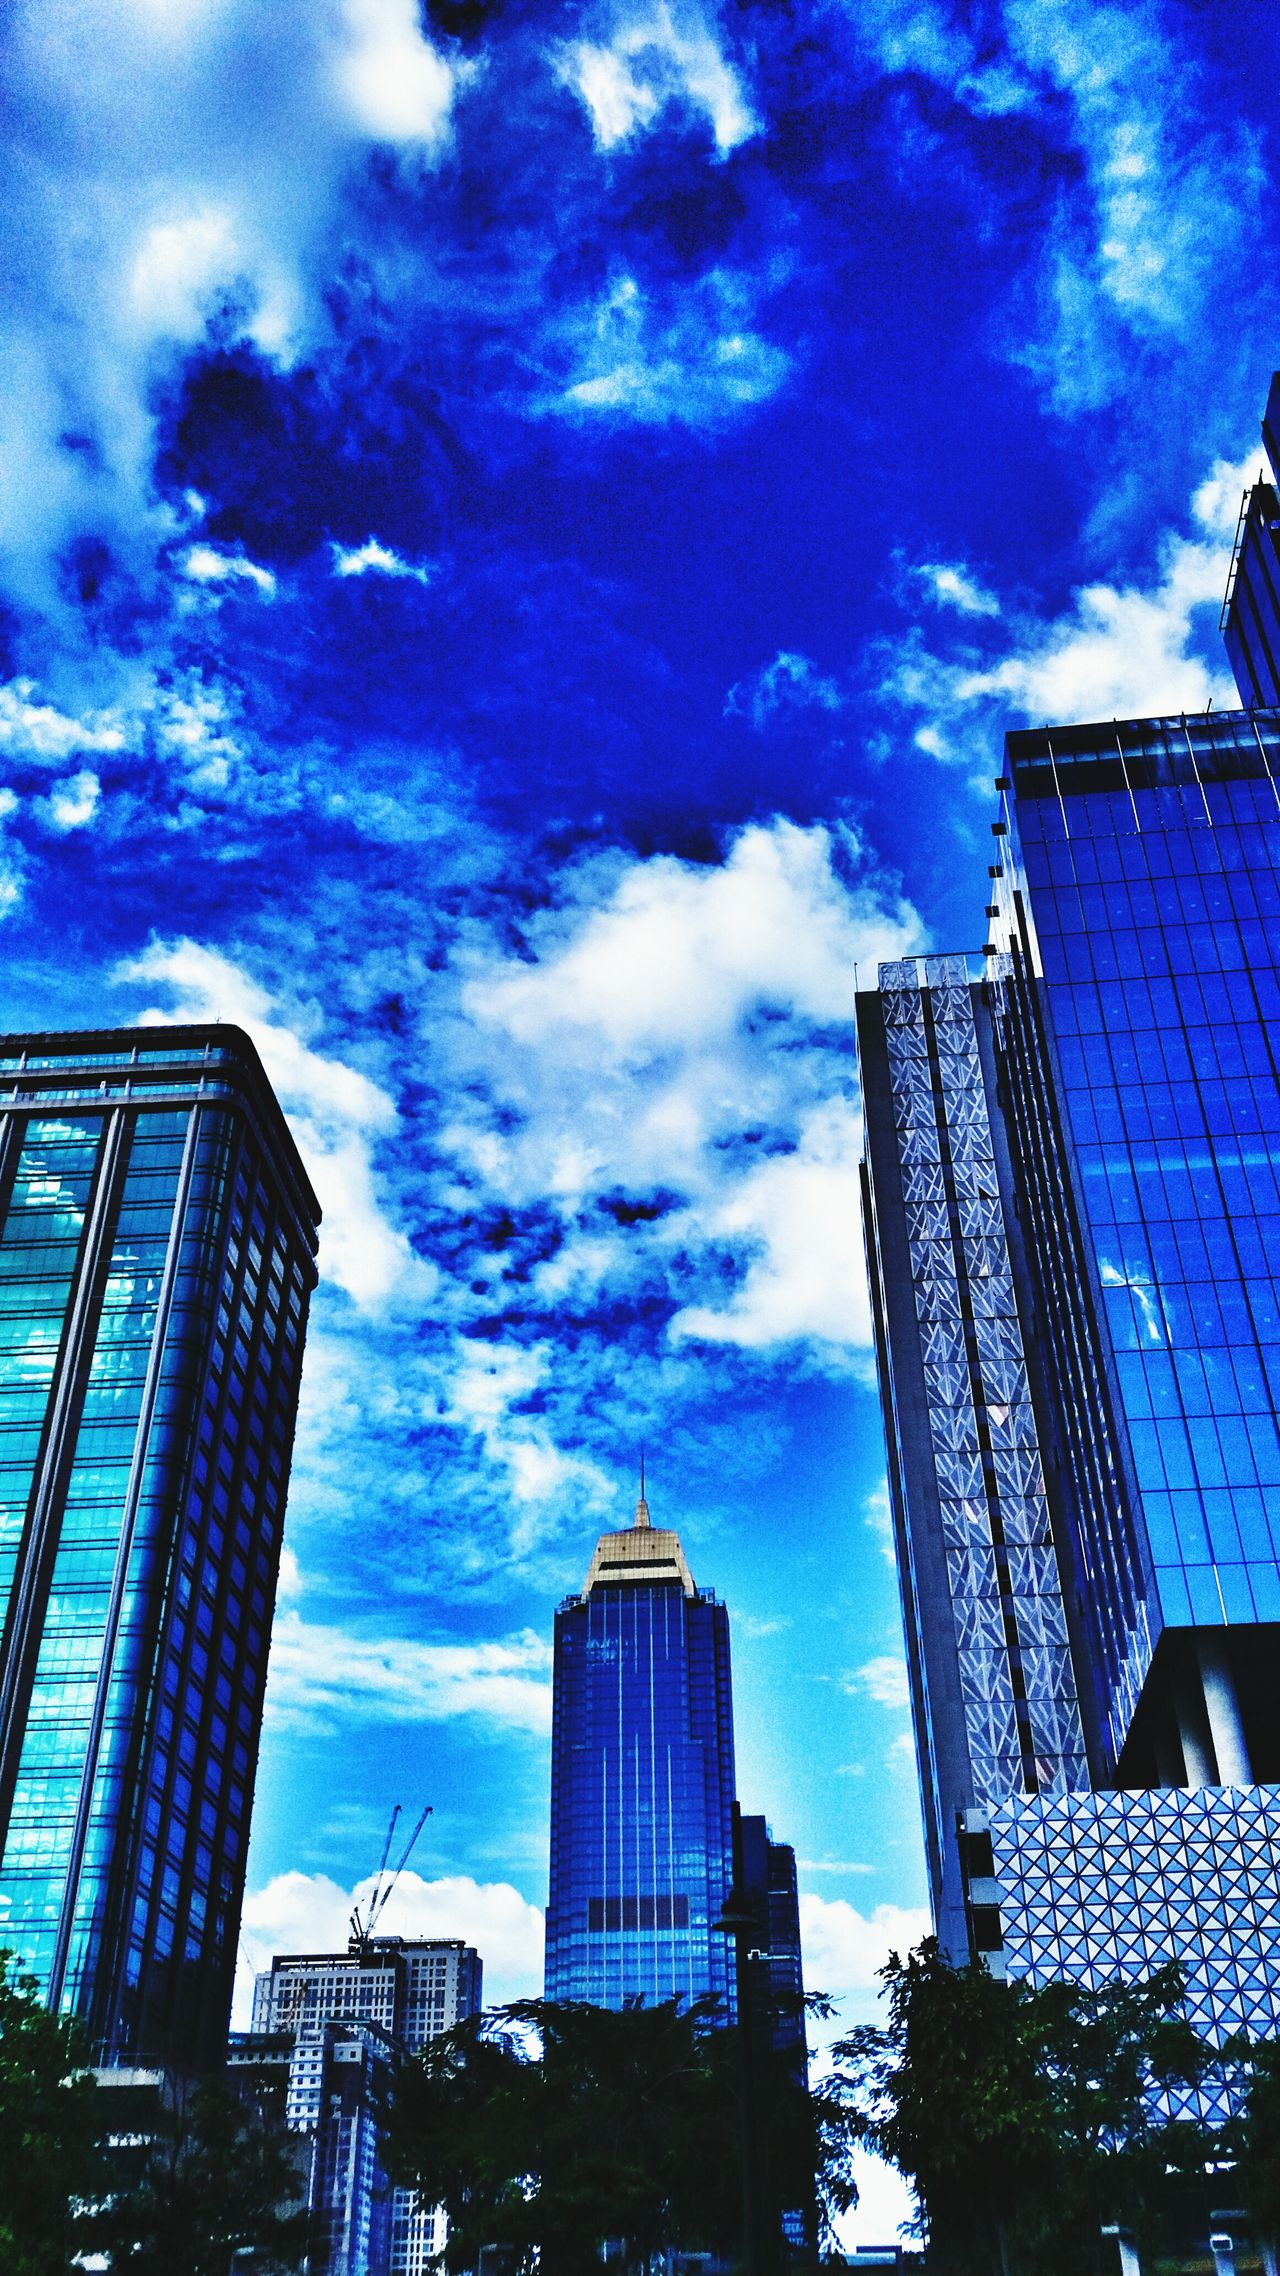 Skyscraper City Architecture Building Exterior Sky Cloud - Sky Built Structure Low Angle View Modern Tower Growth Outdoors No People City Life Development Cityscape Financial District  Urban Skyline Day Nature